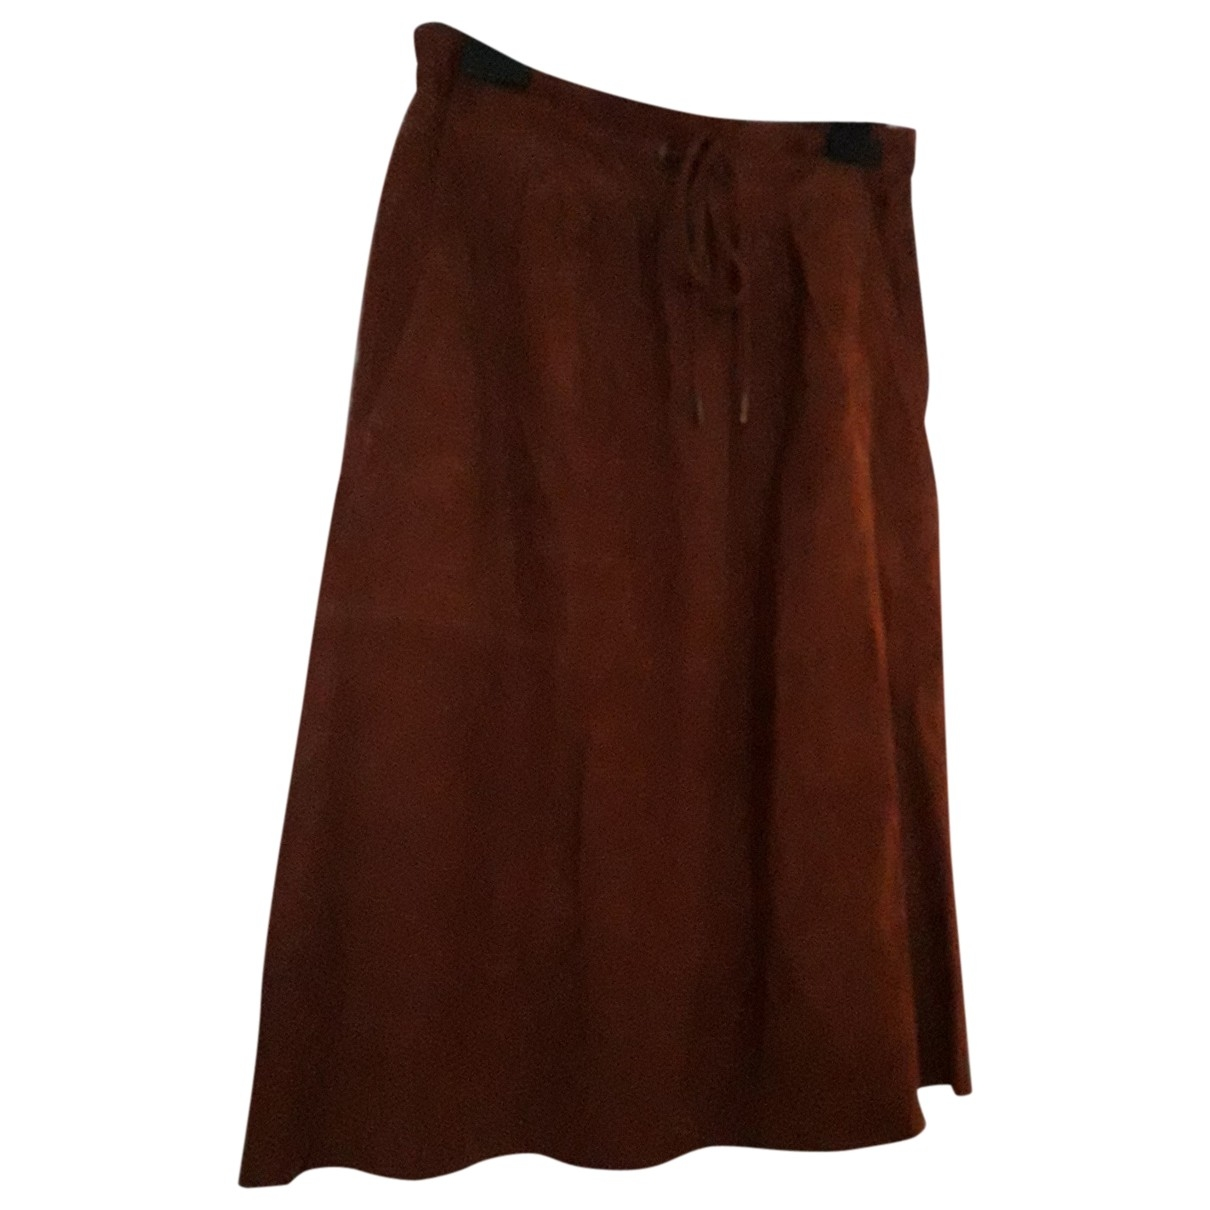 Les Petites \N Brown Leather skirt for Women 36 FR